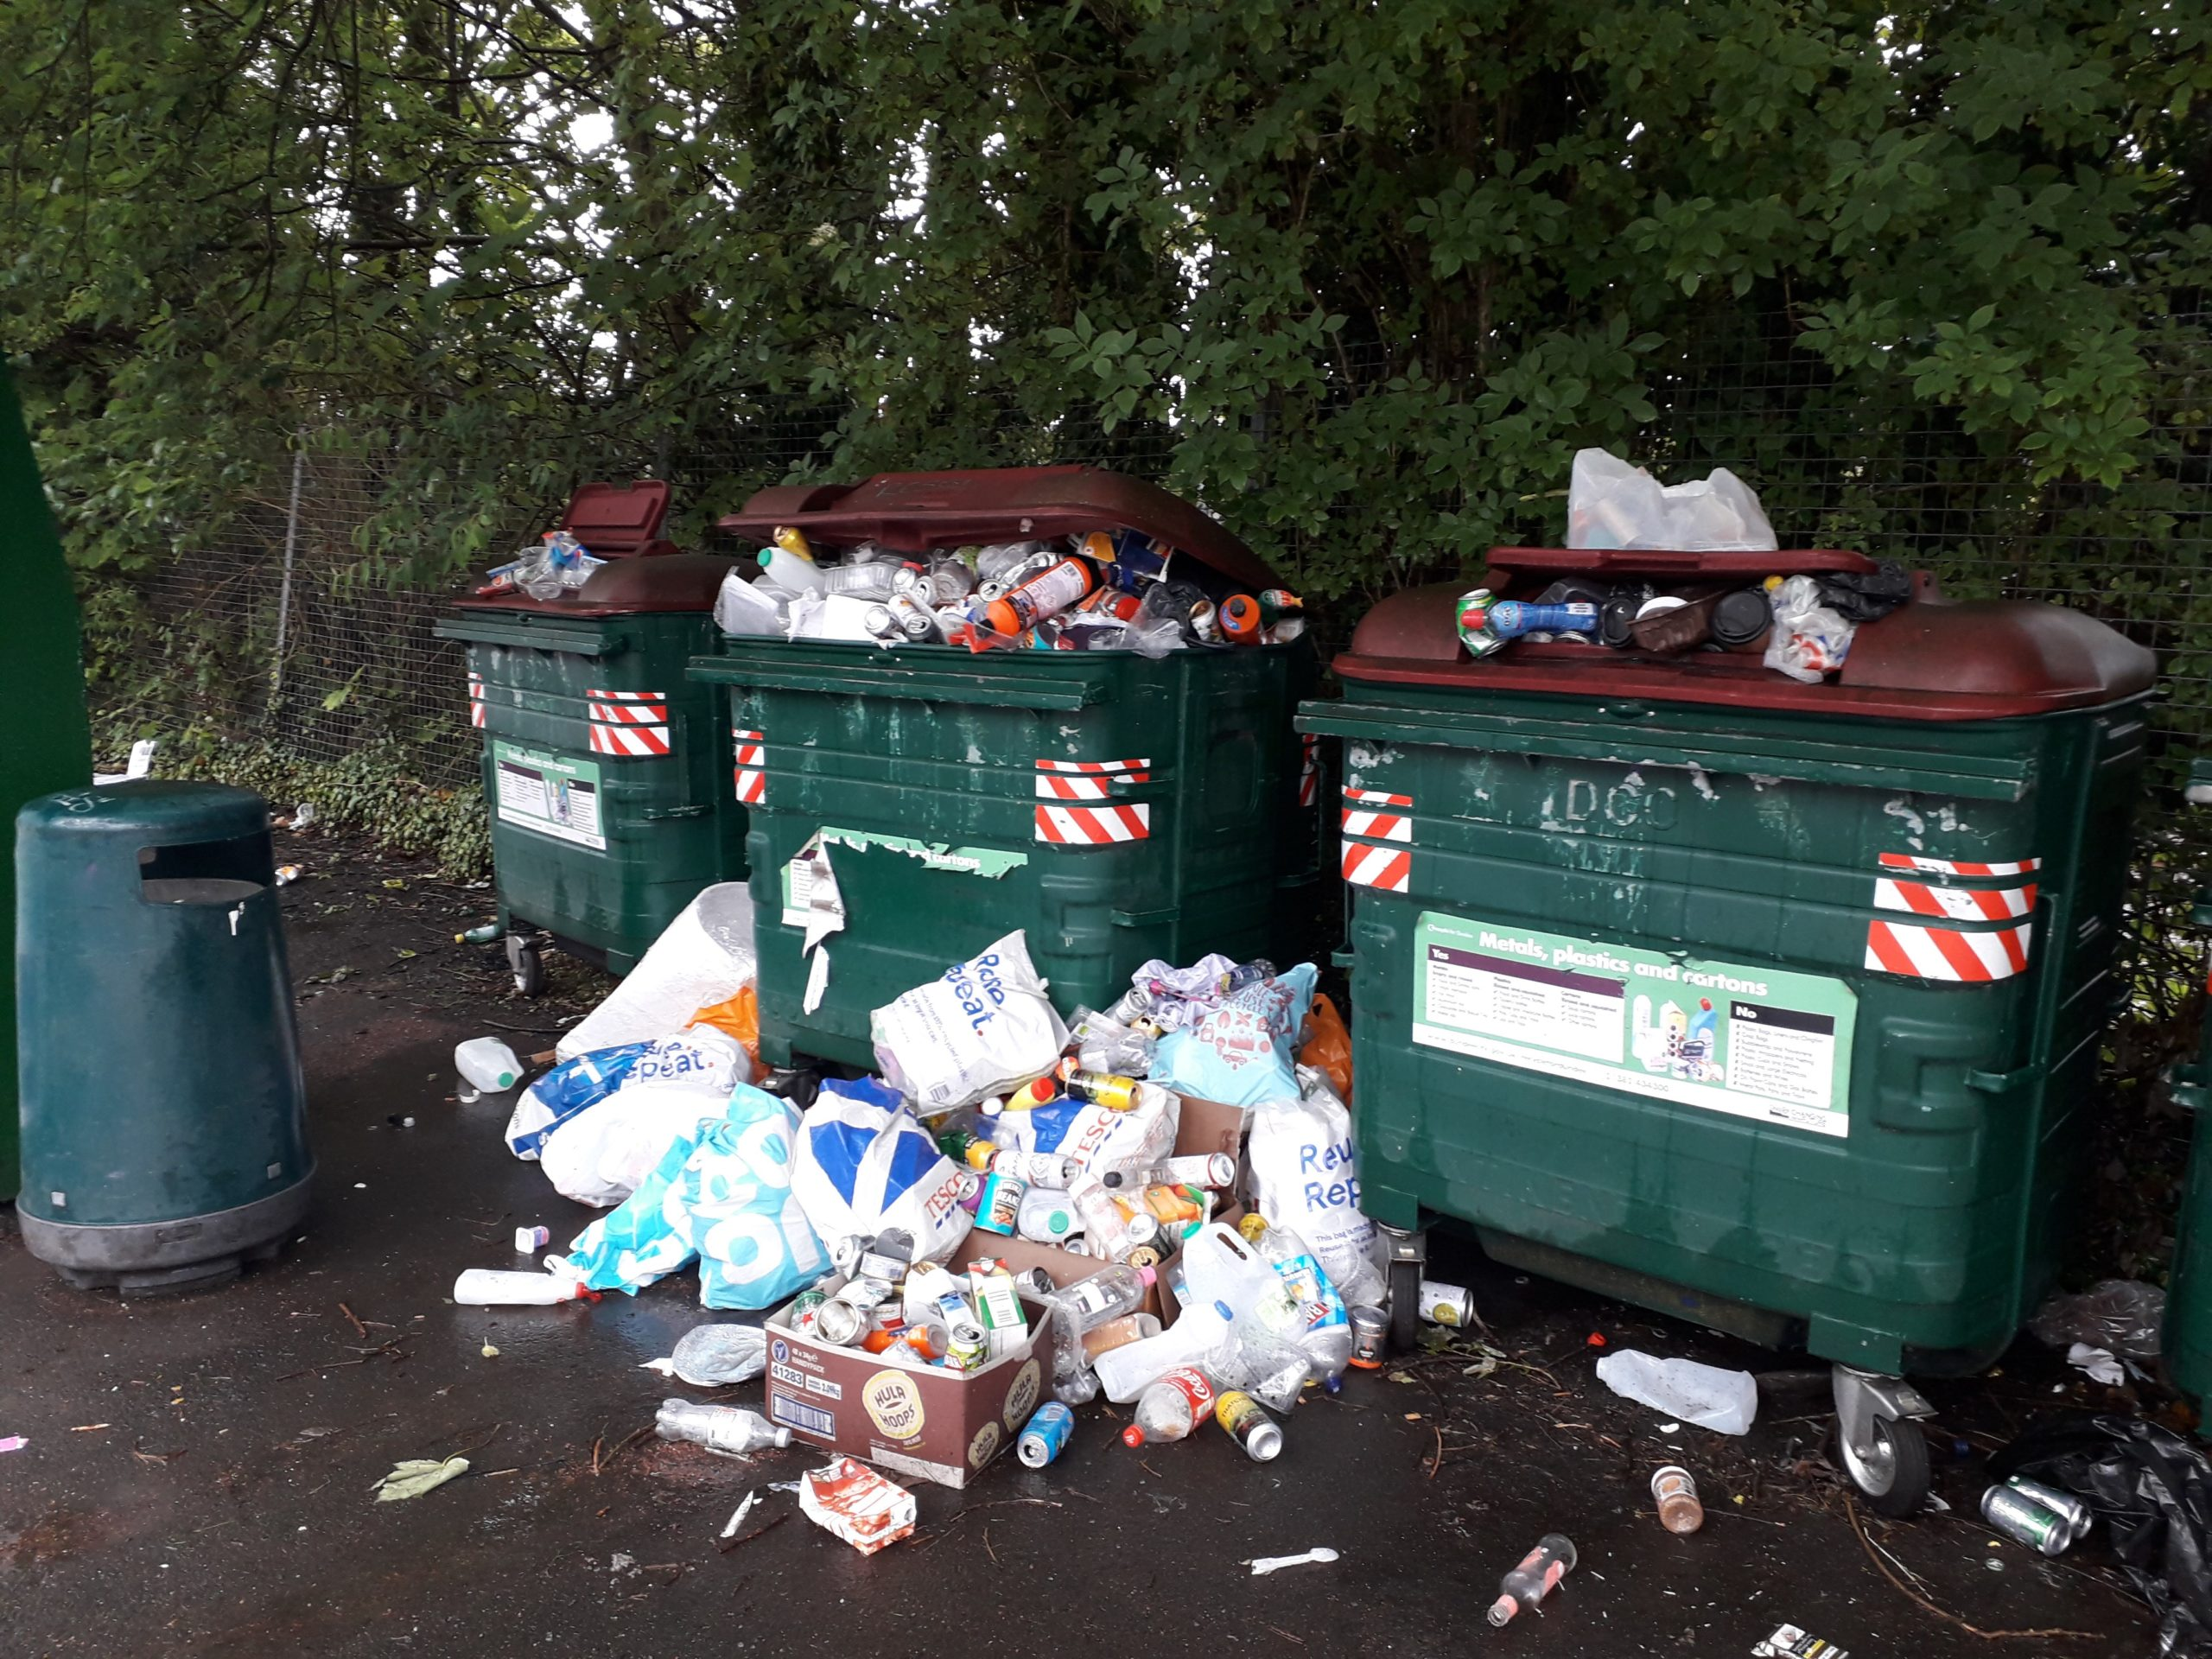 Overflowing Eurobins are a worry for residents across the city.